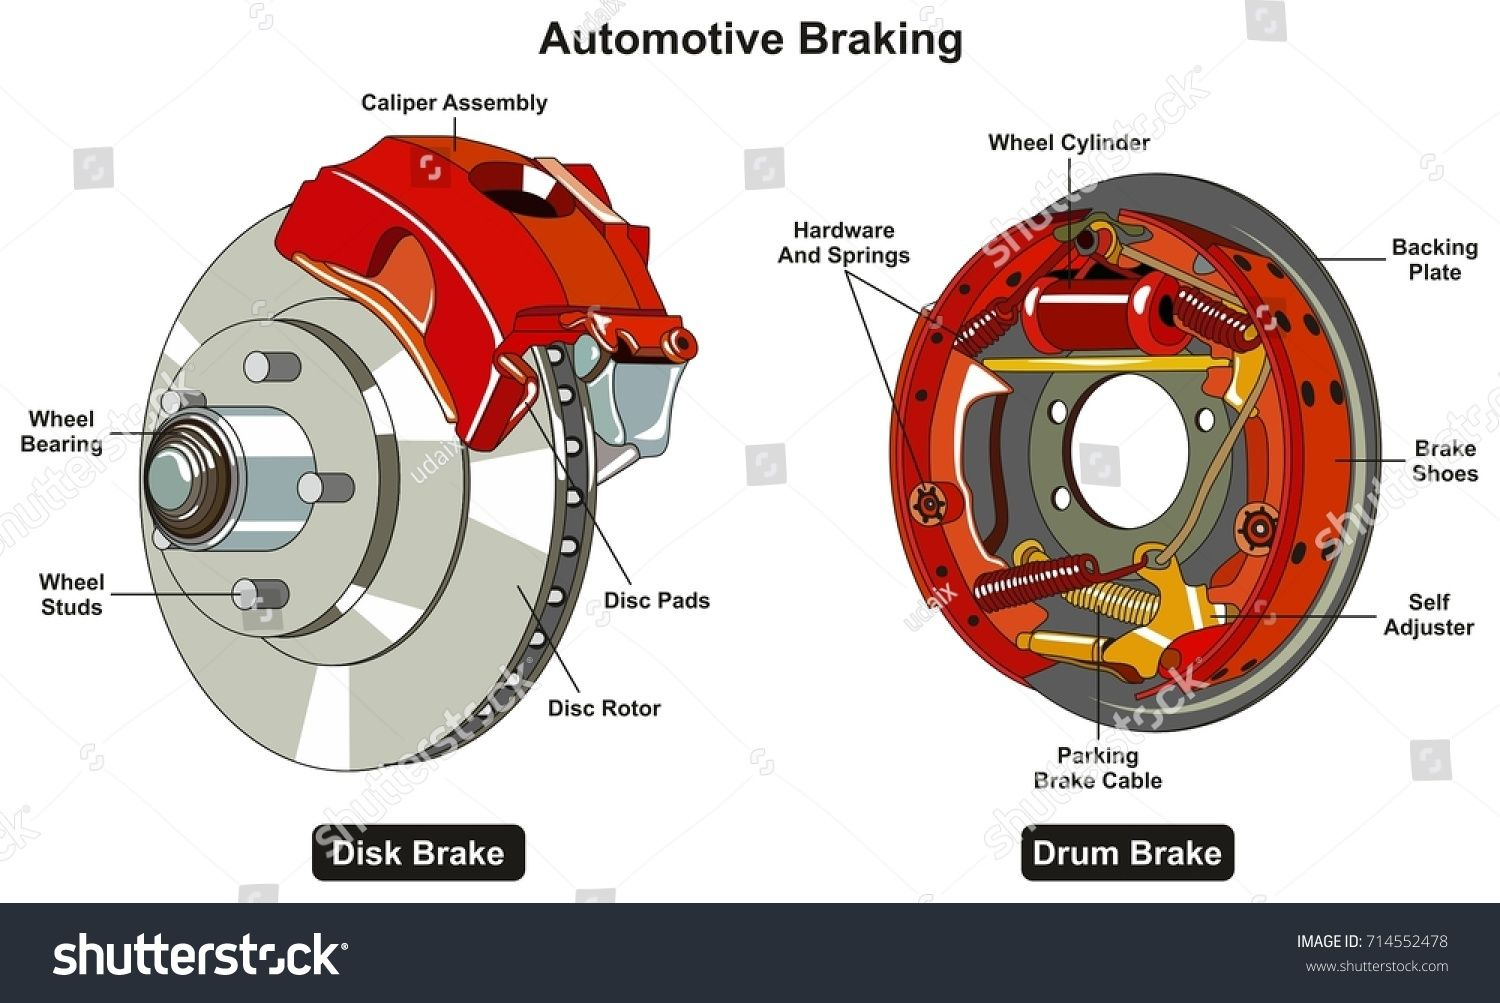 medium resolution of common automotive braking system infographic diagram showing two types disk and drum car brake with all parts for road traffic safety awareness and